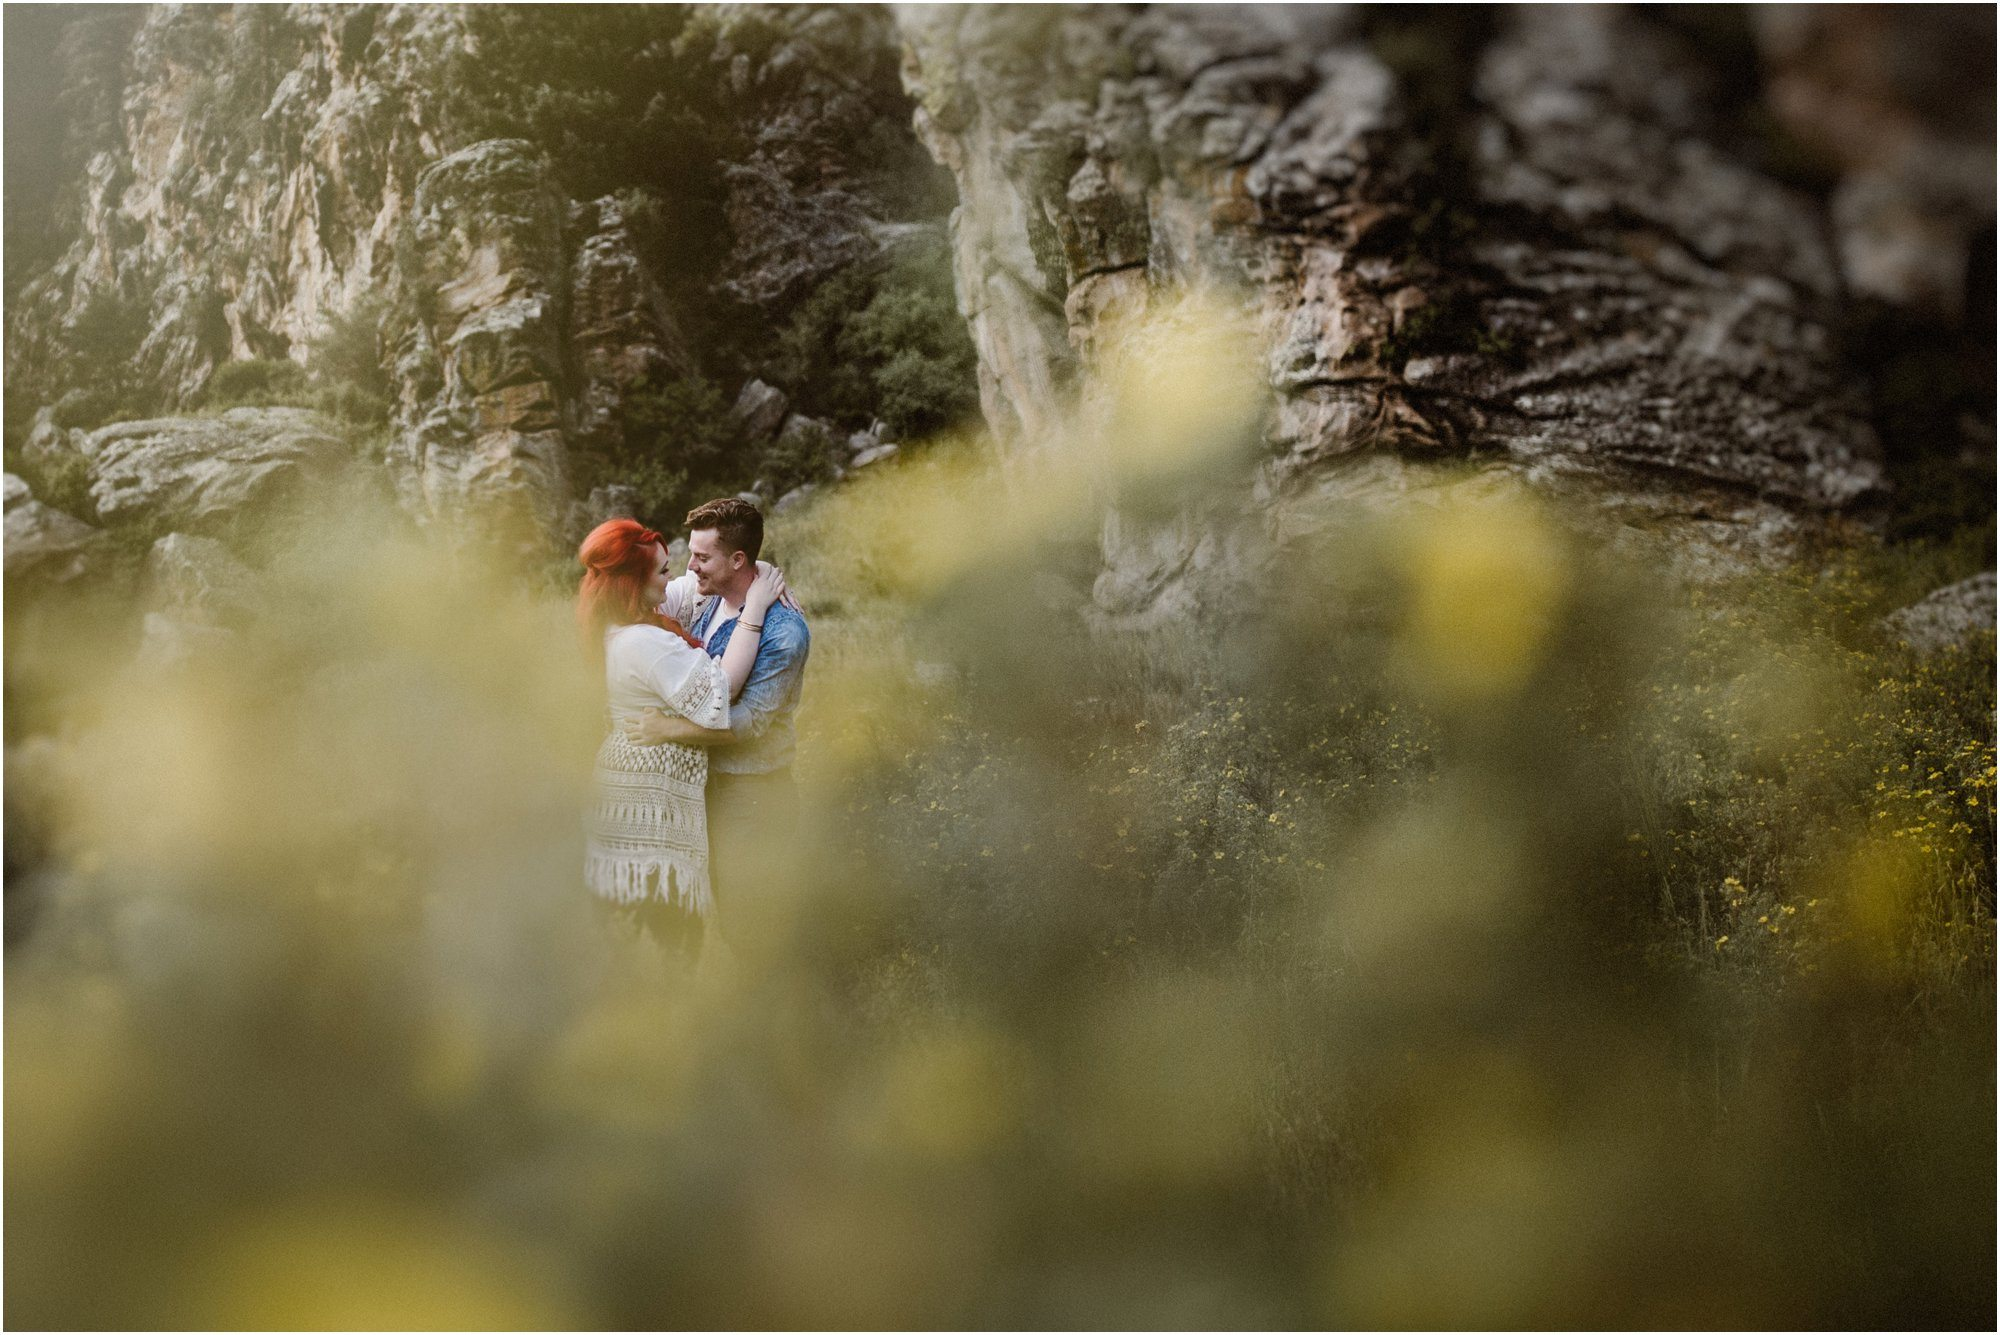 013Blue Rose Photography_ Albuquerque, Santa Fe, New Mexico wedding photographer_ engagement pictures